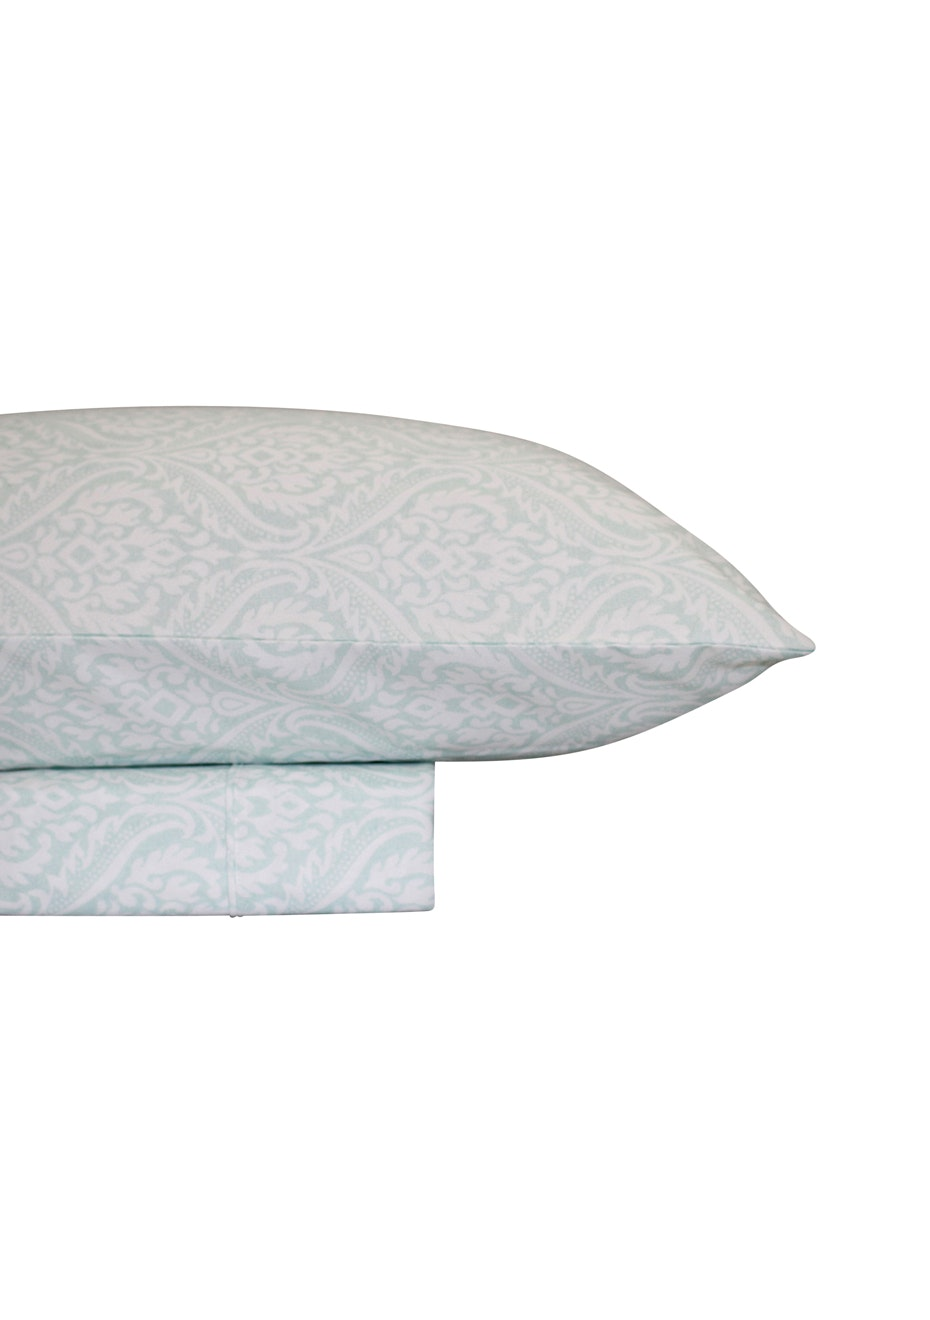 Thermal Flannel Sheet Sets - Haven Design - Ice - Double Bed